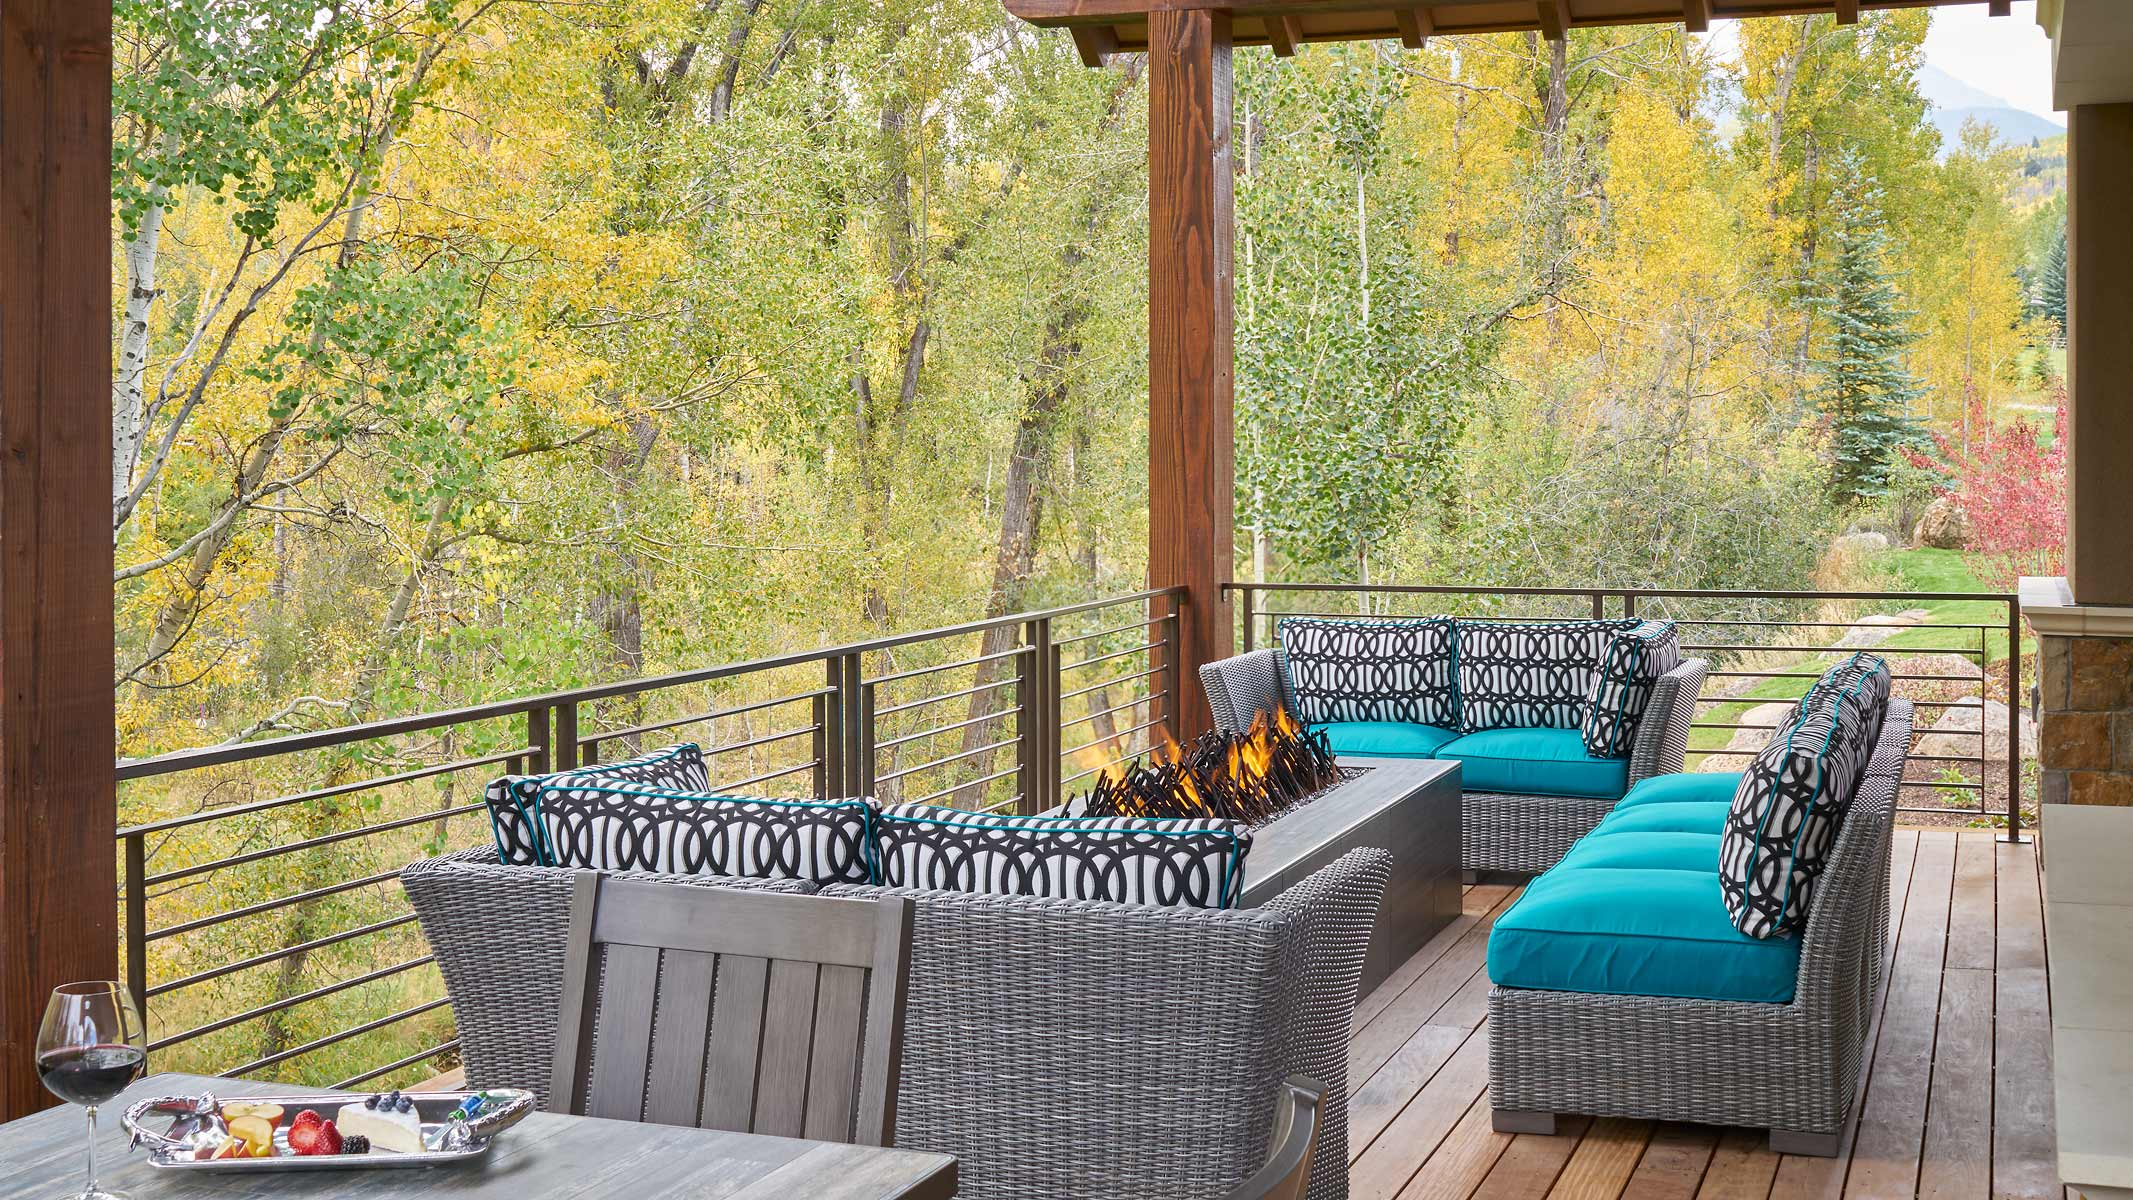 McCoy-Design-Neolith-Edwards-9-22-17-Deck-Fire-Seating-16X9-Web.jpg